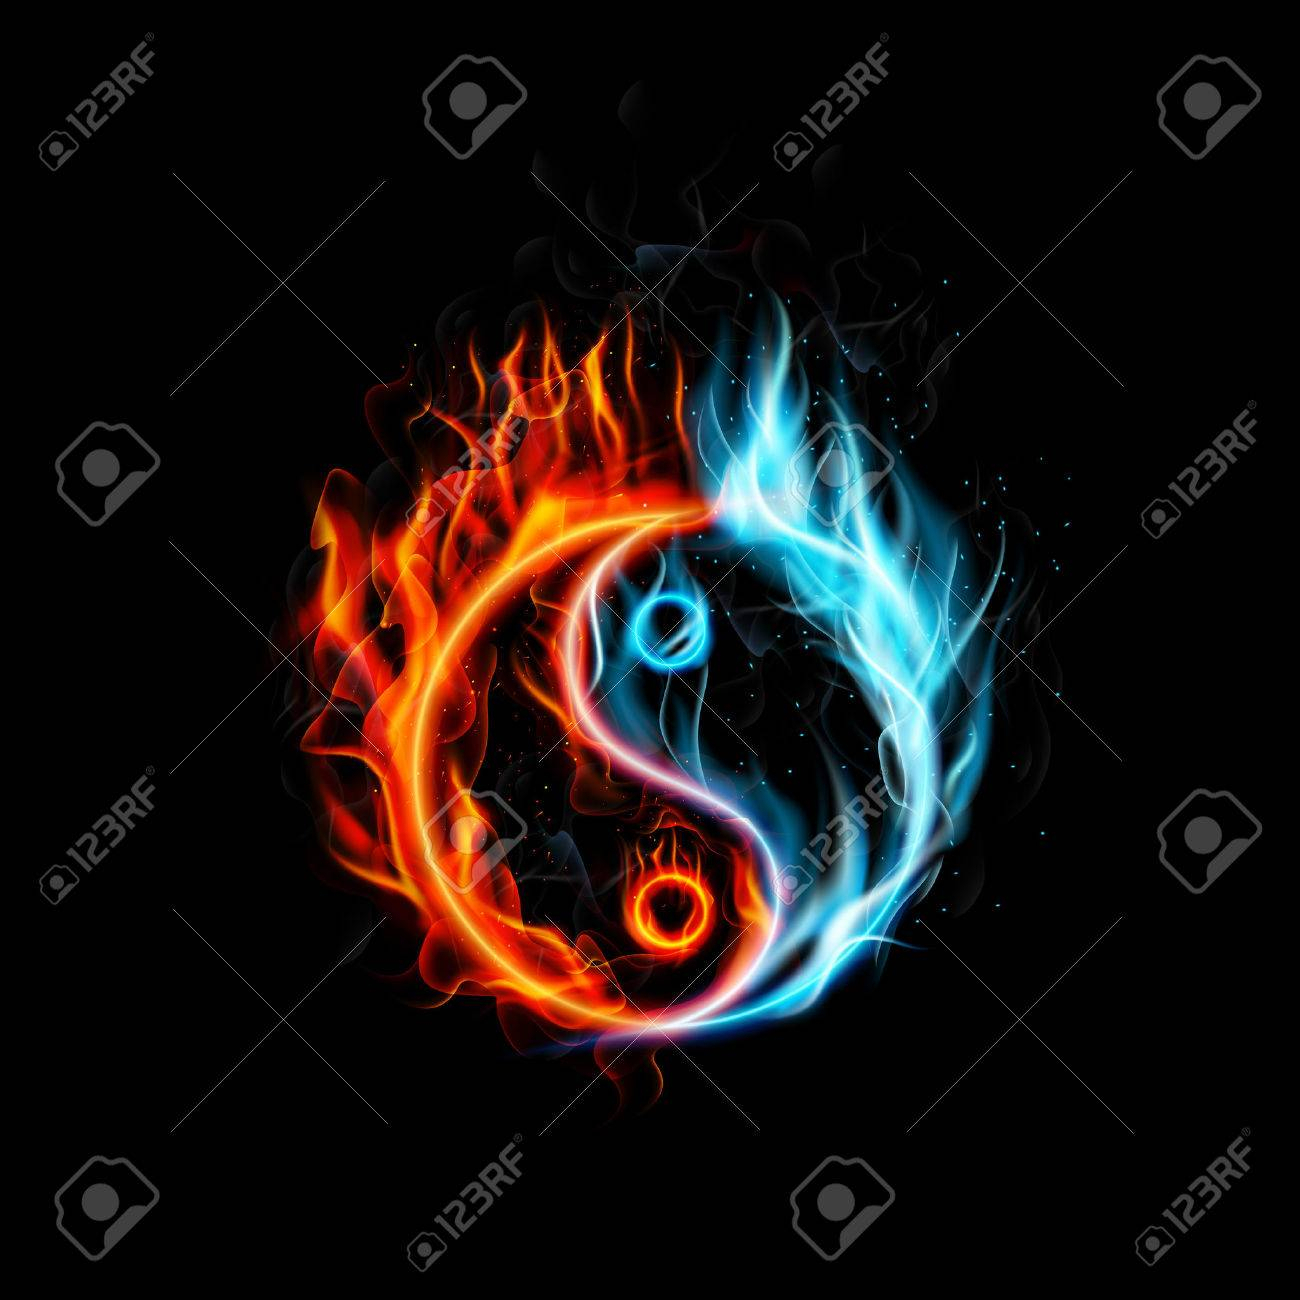 fire burning yin yang with black background stock photo, picture and